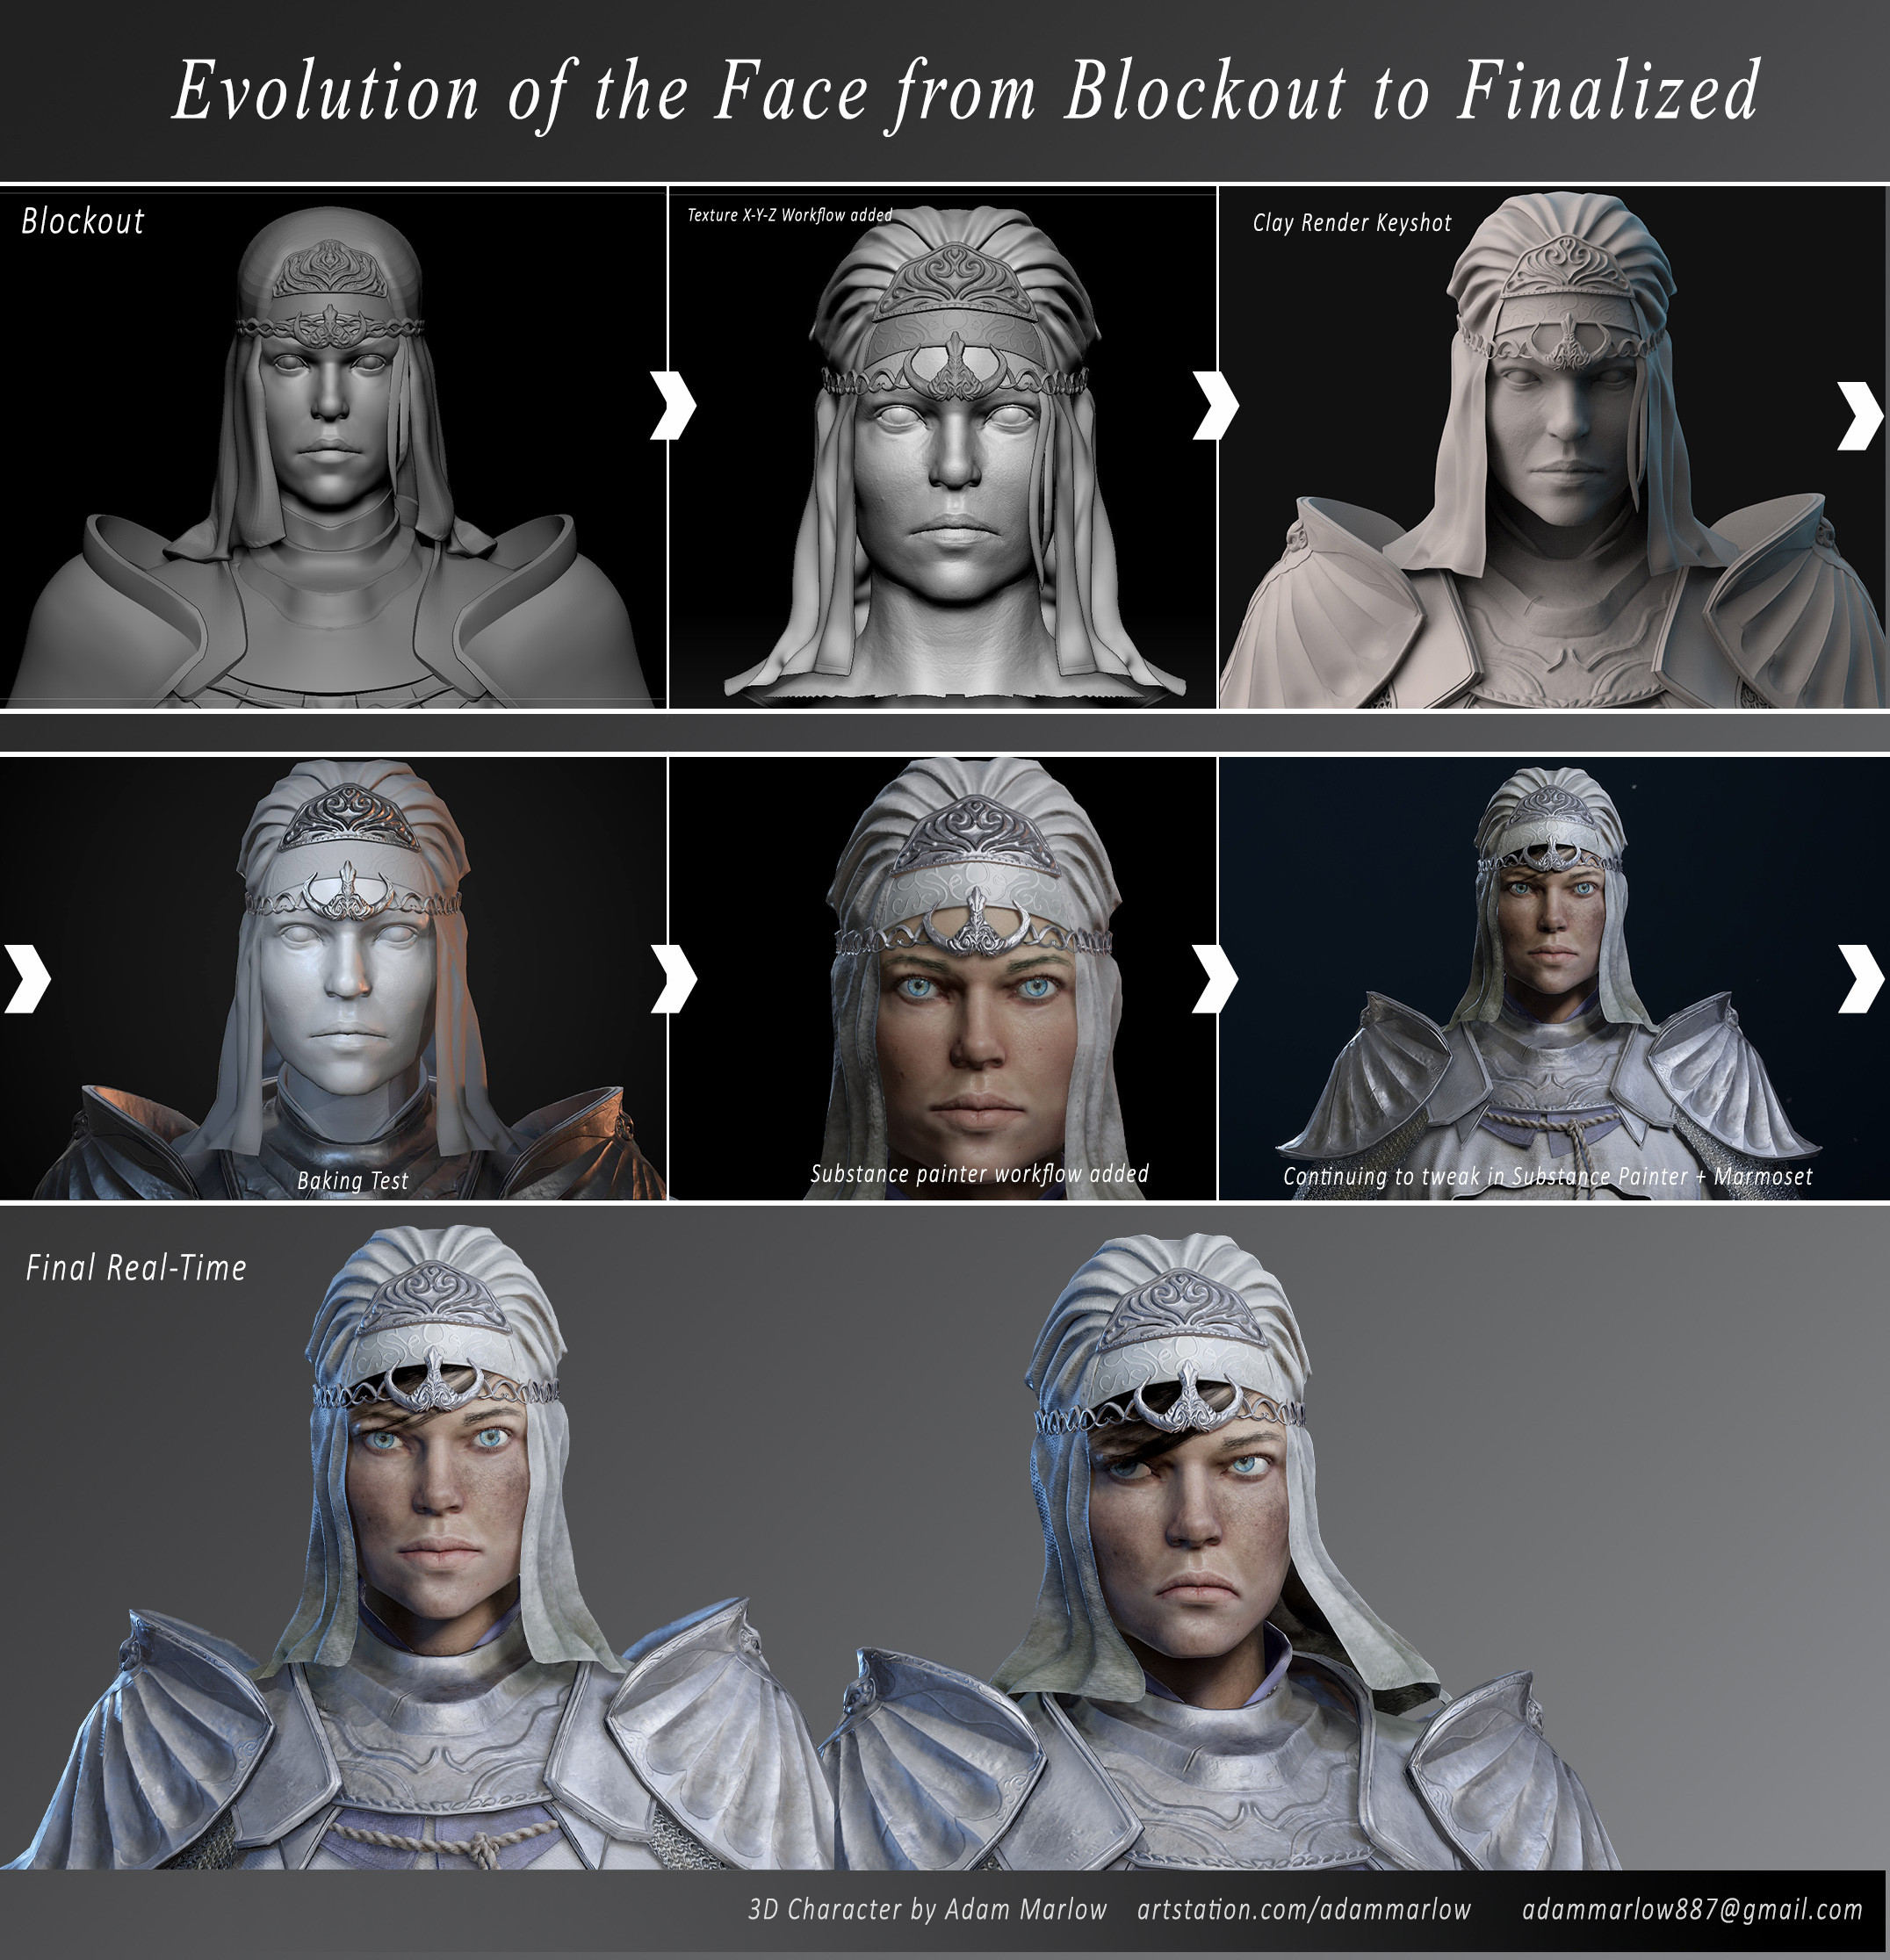 Evolution of the Head from initial blocking to finalized Real time Render